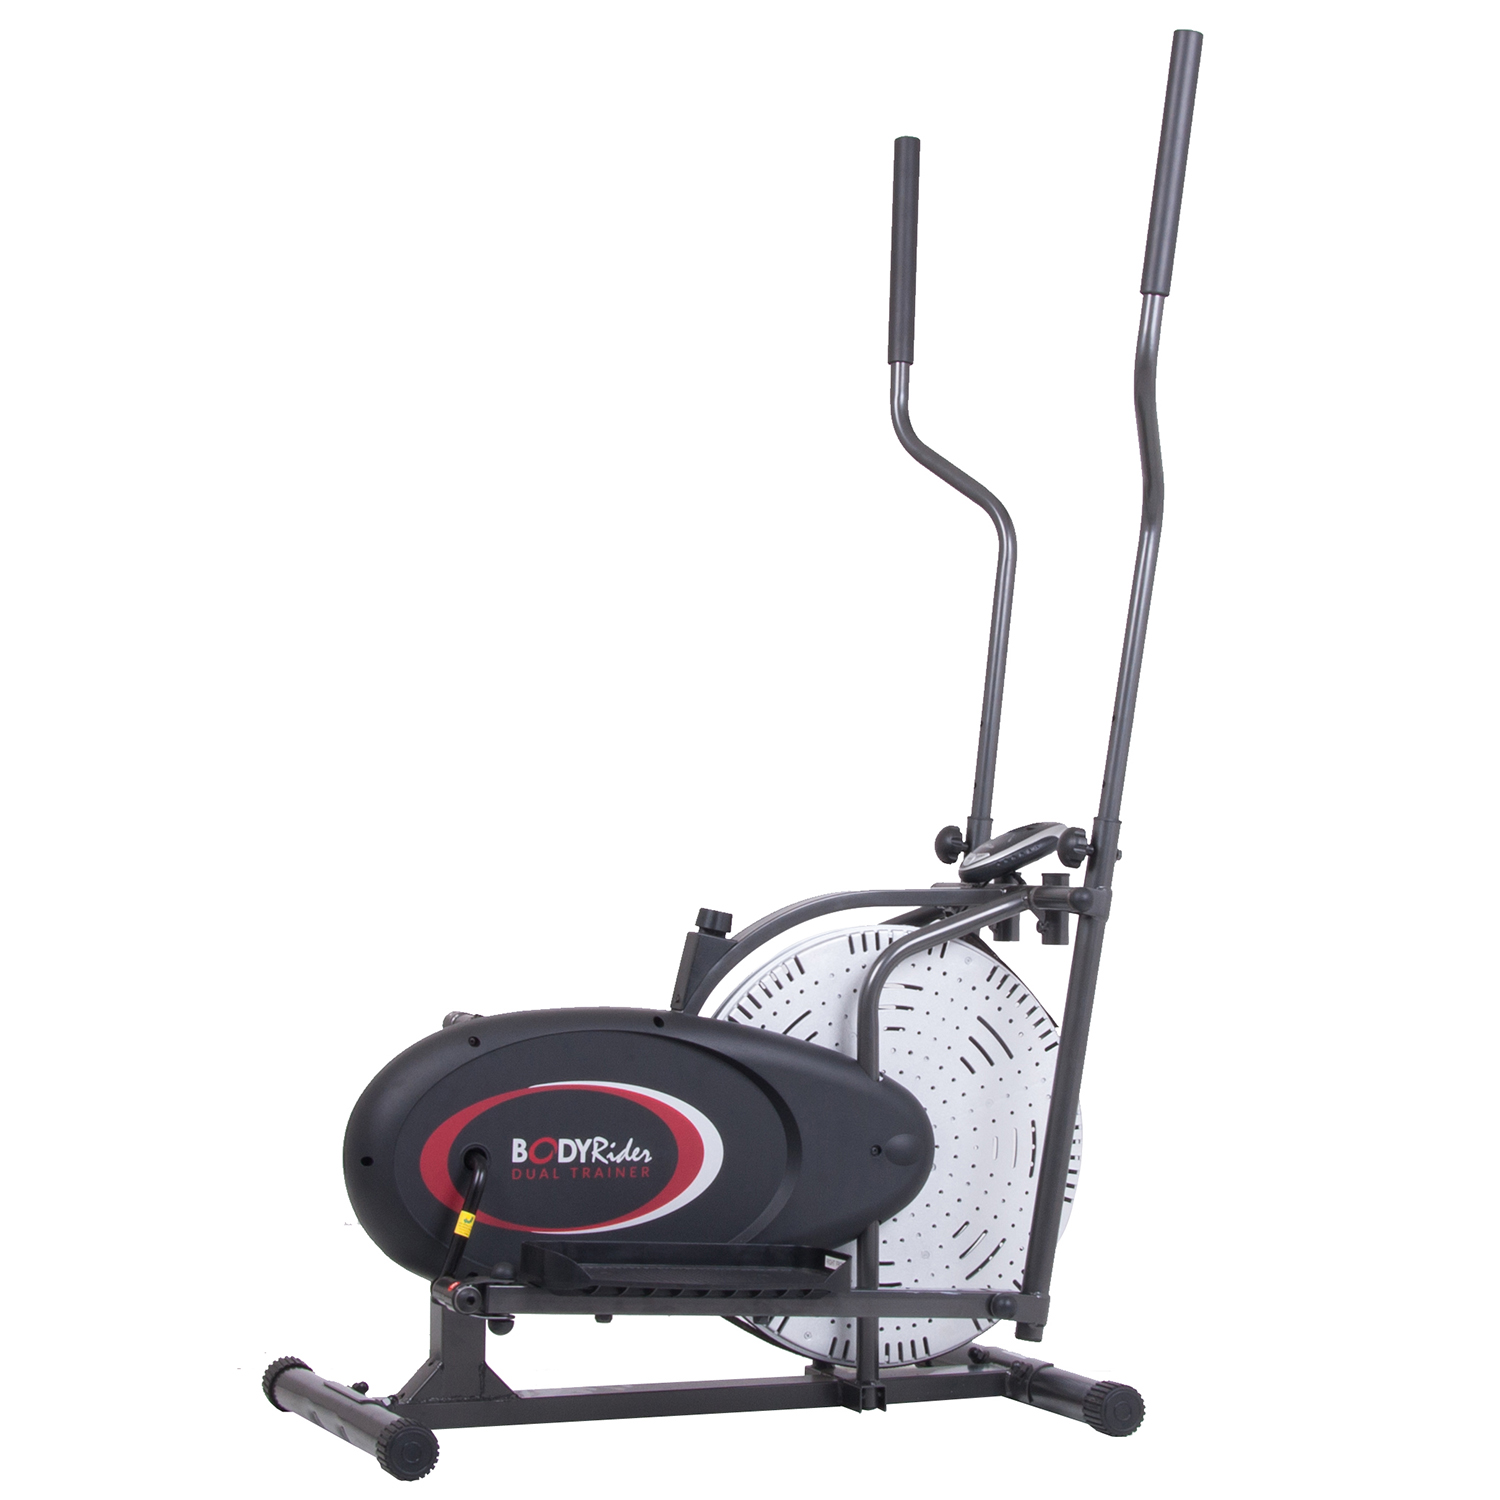 Body Rider BR1958 Fan Elliptical Trainer Exercise Machine / Cardio Fitness Home Gym Equipment